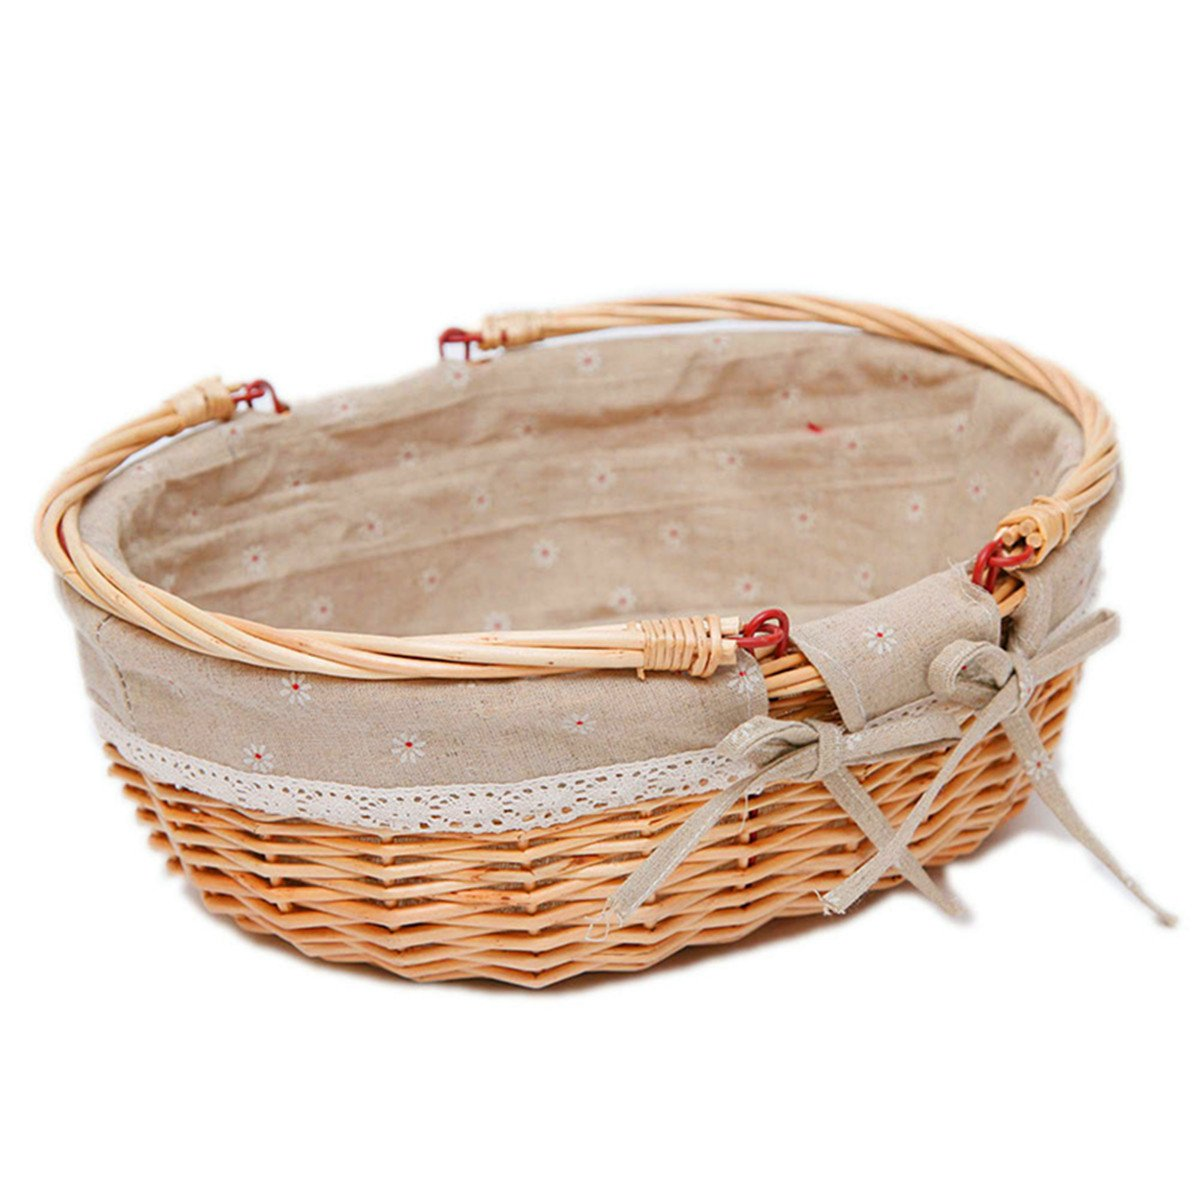 Oypeip Medium Wicker Basket Oval Woven Willow Basket with Double Drop Down Handles and Removable Linen Lining Gift Picnic Basket (Auburn)